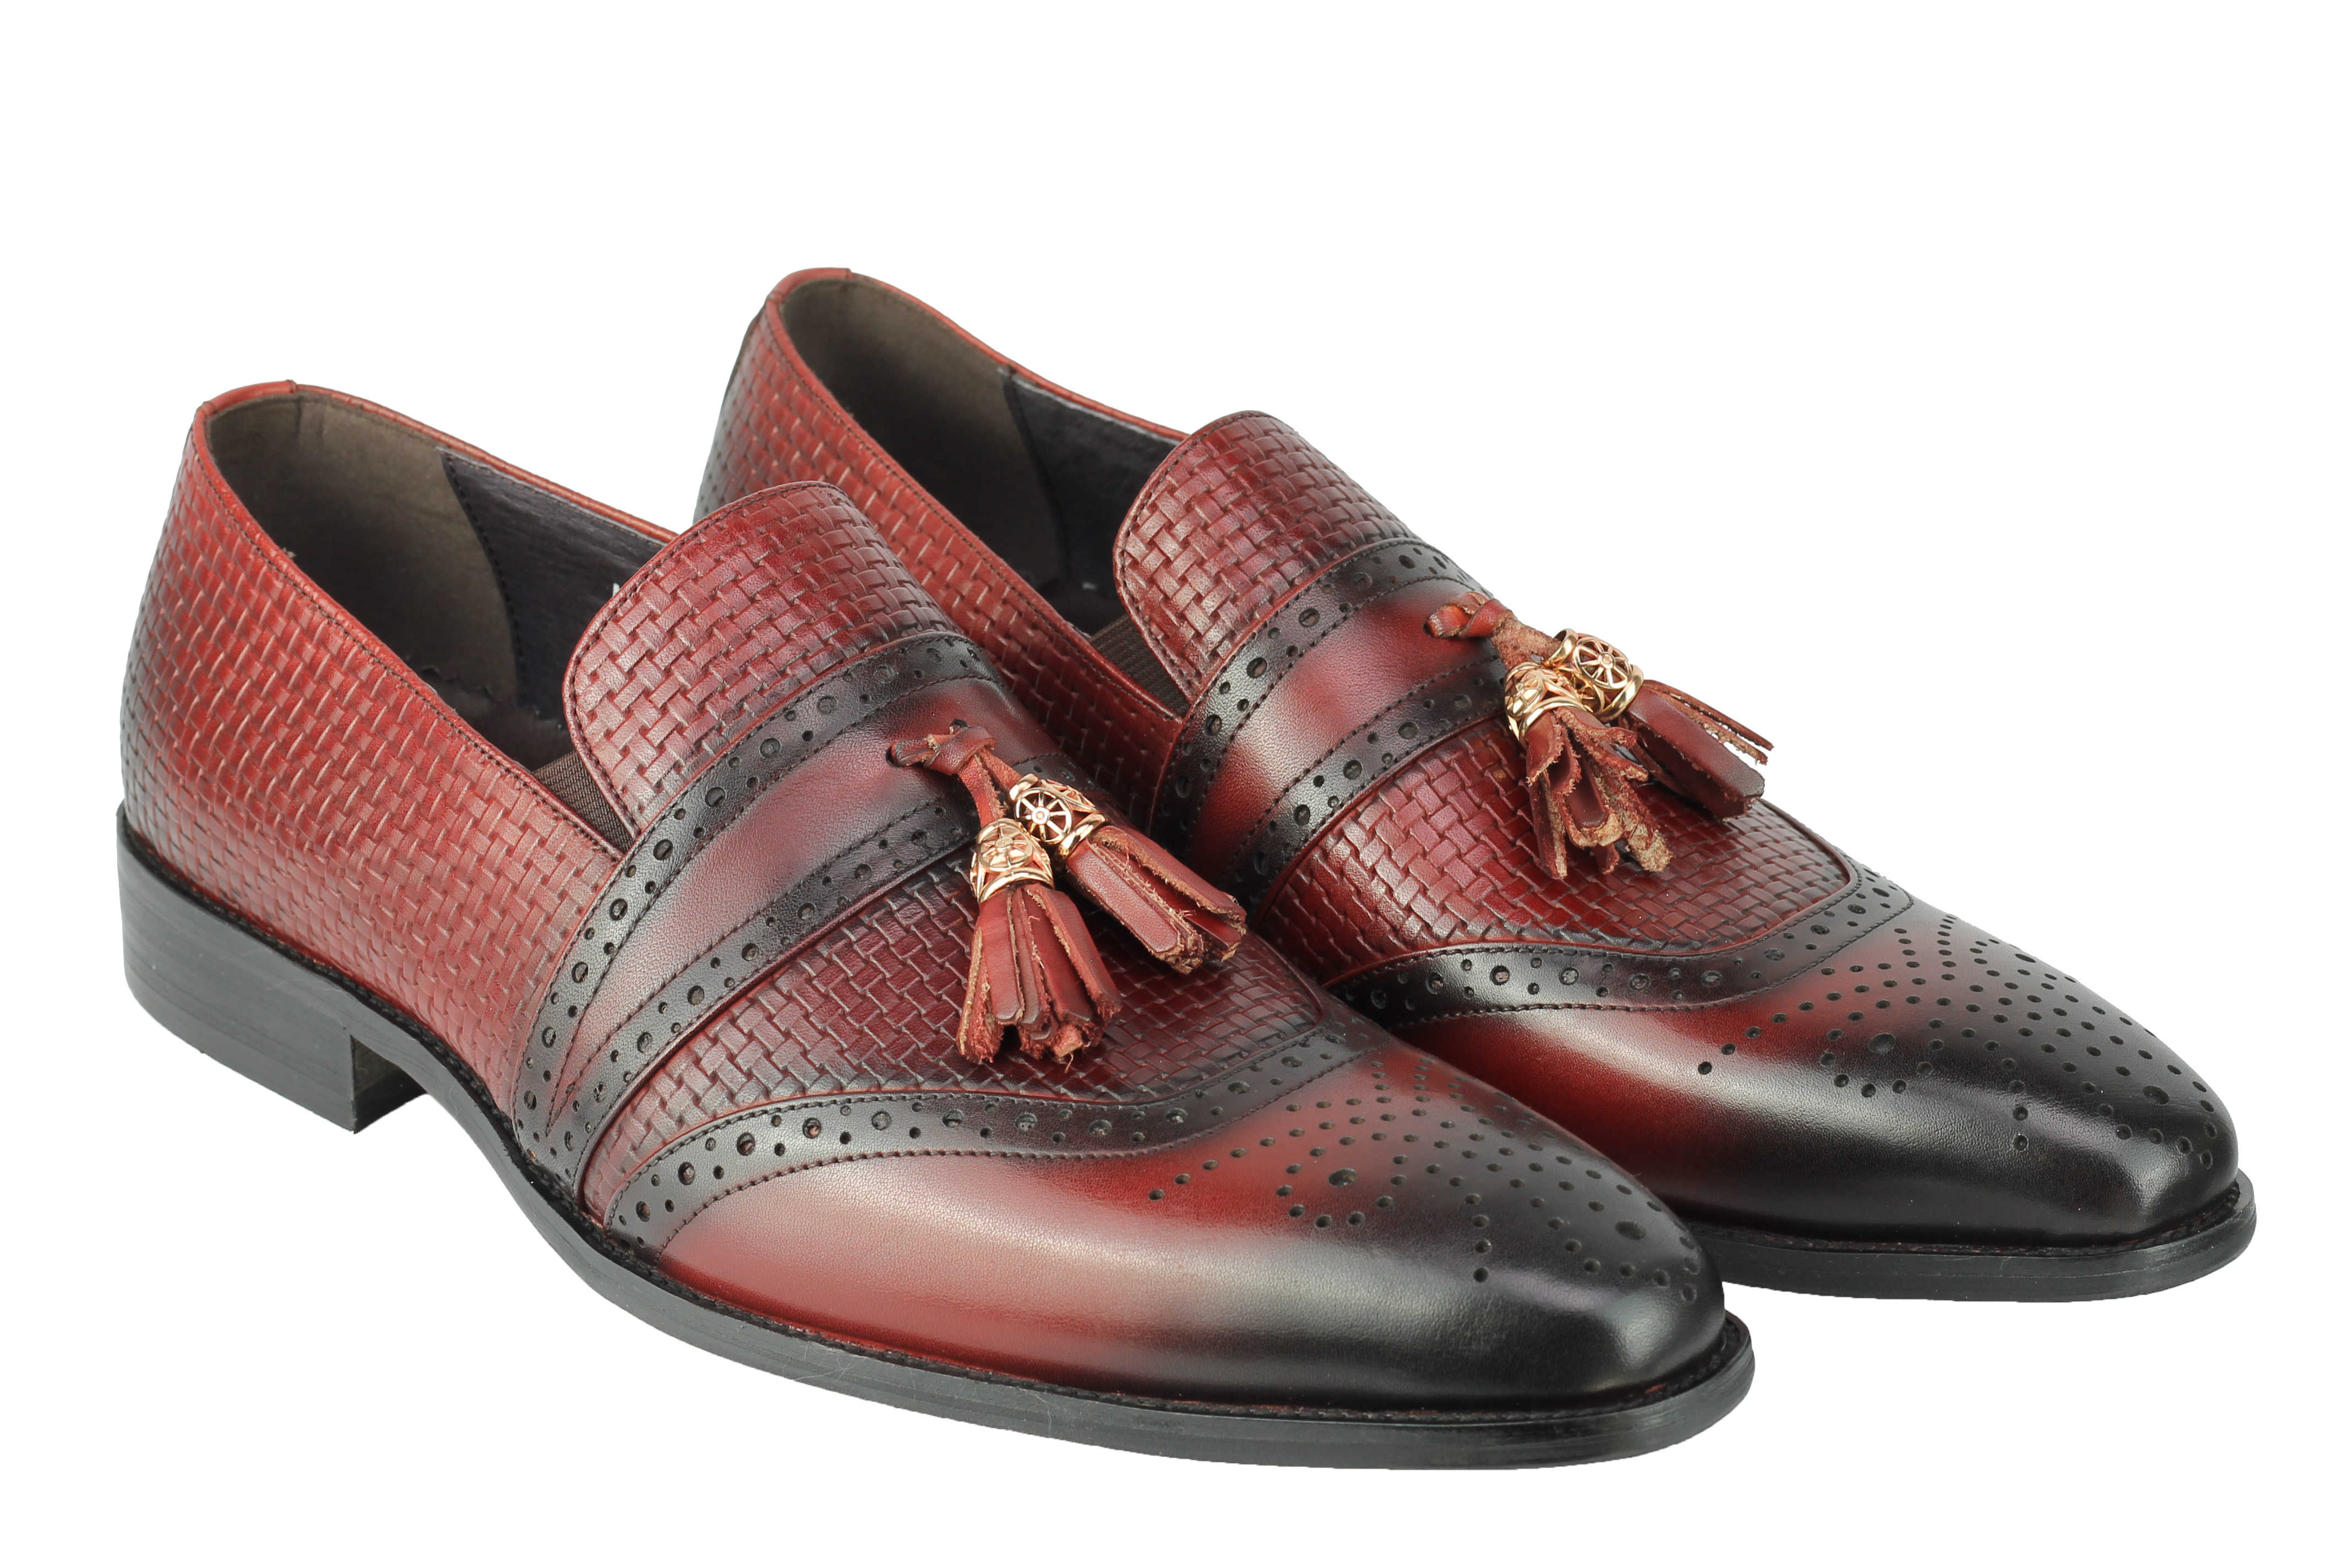 Mens-Real-Leather-Slip-on-Tassel-Loafers-High-Detailed-Smart-Dress-Party-Shoes thumbnail 10